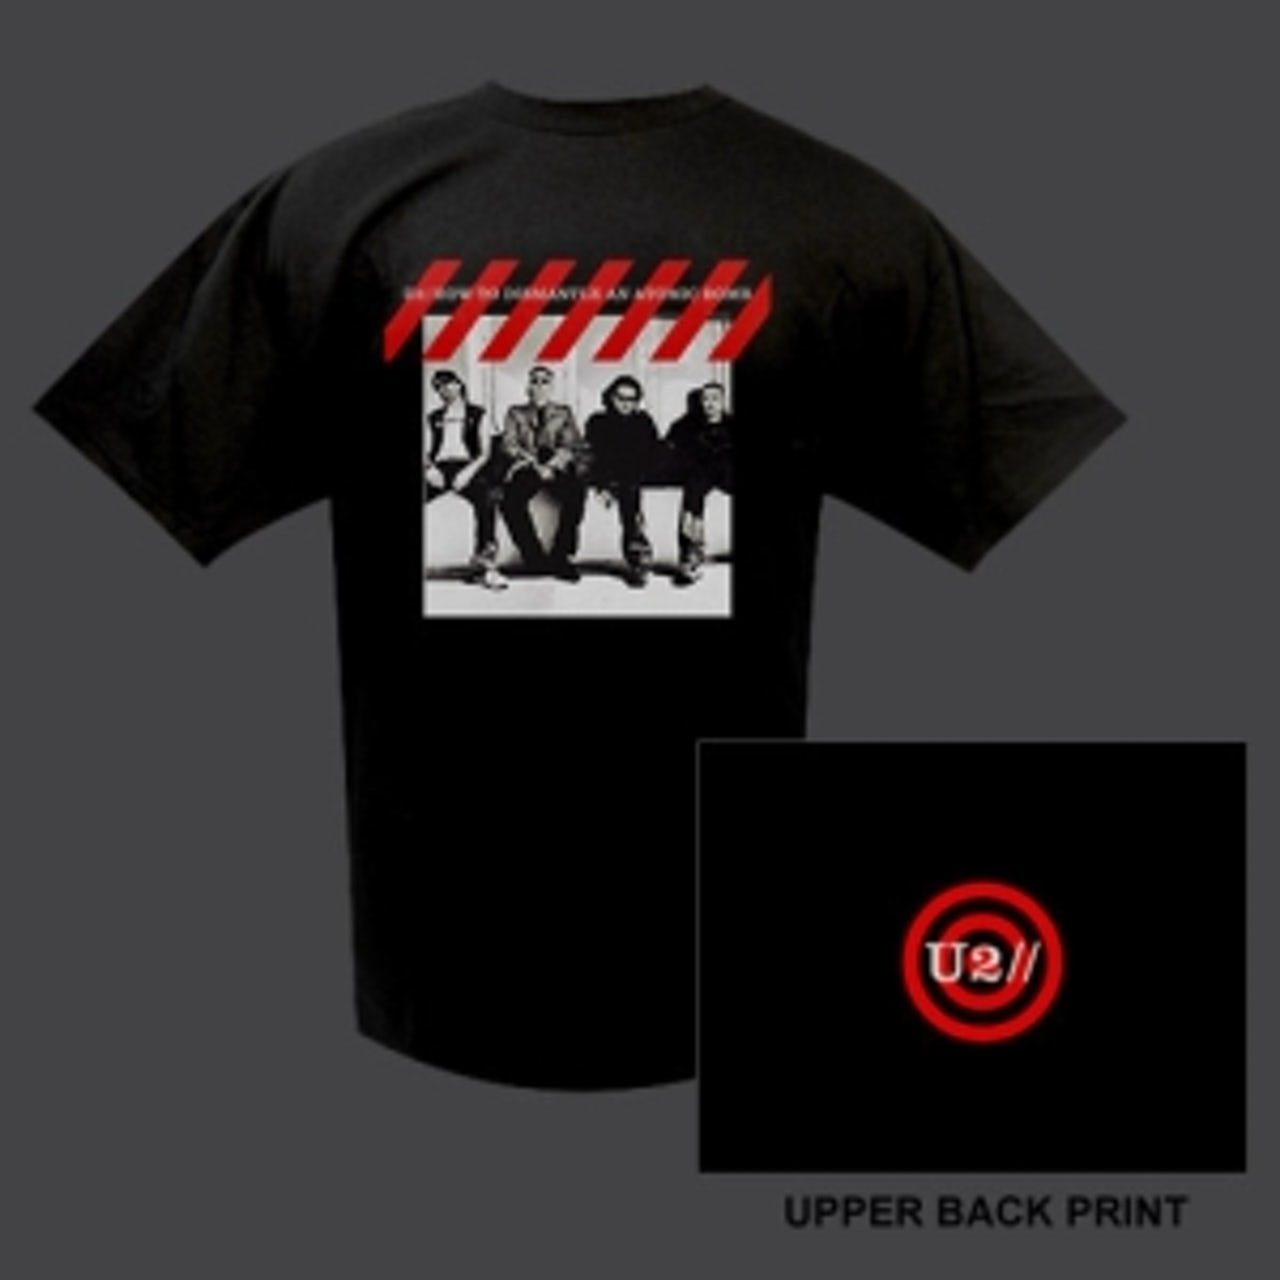 U2 'How To Dismantle An Atomic Bomb' Album Cover T-shirt